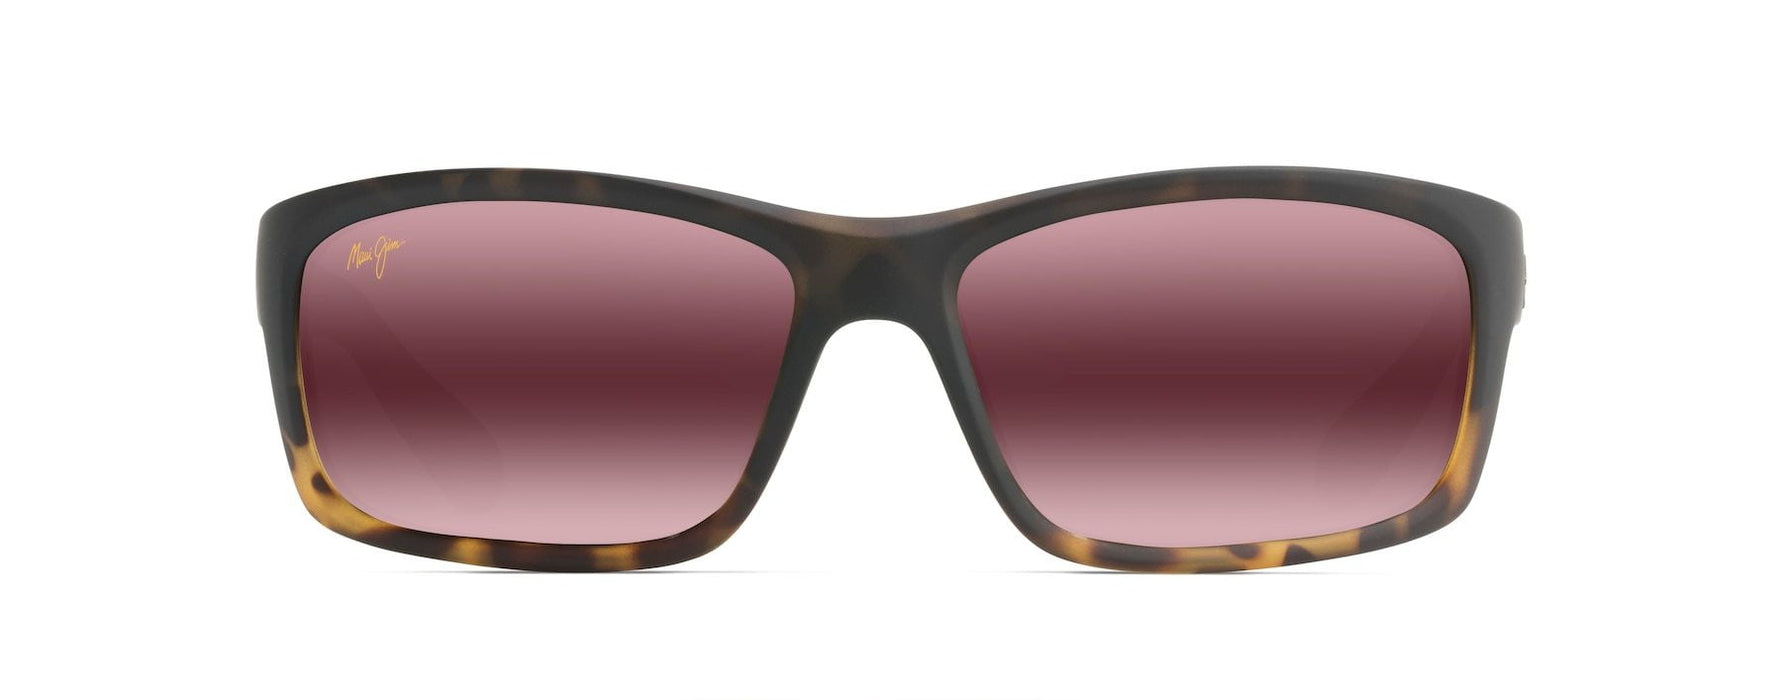 MyMaui Kanaio Coast MM766-020 Sunglasses